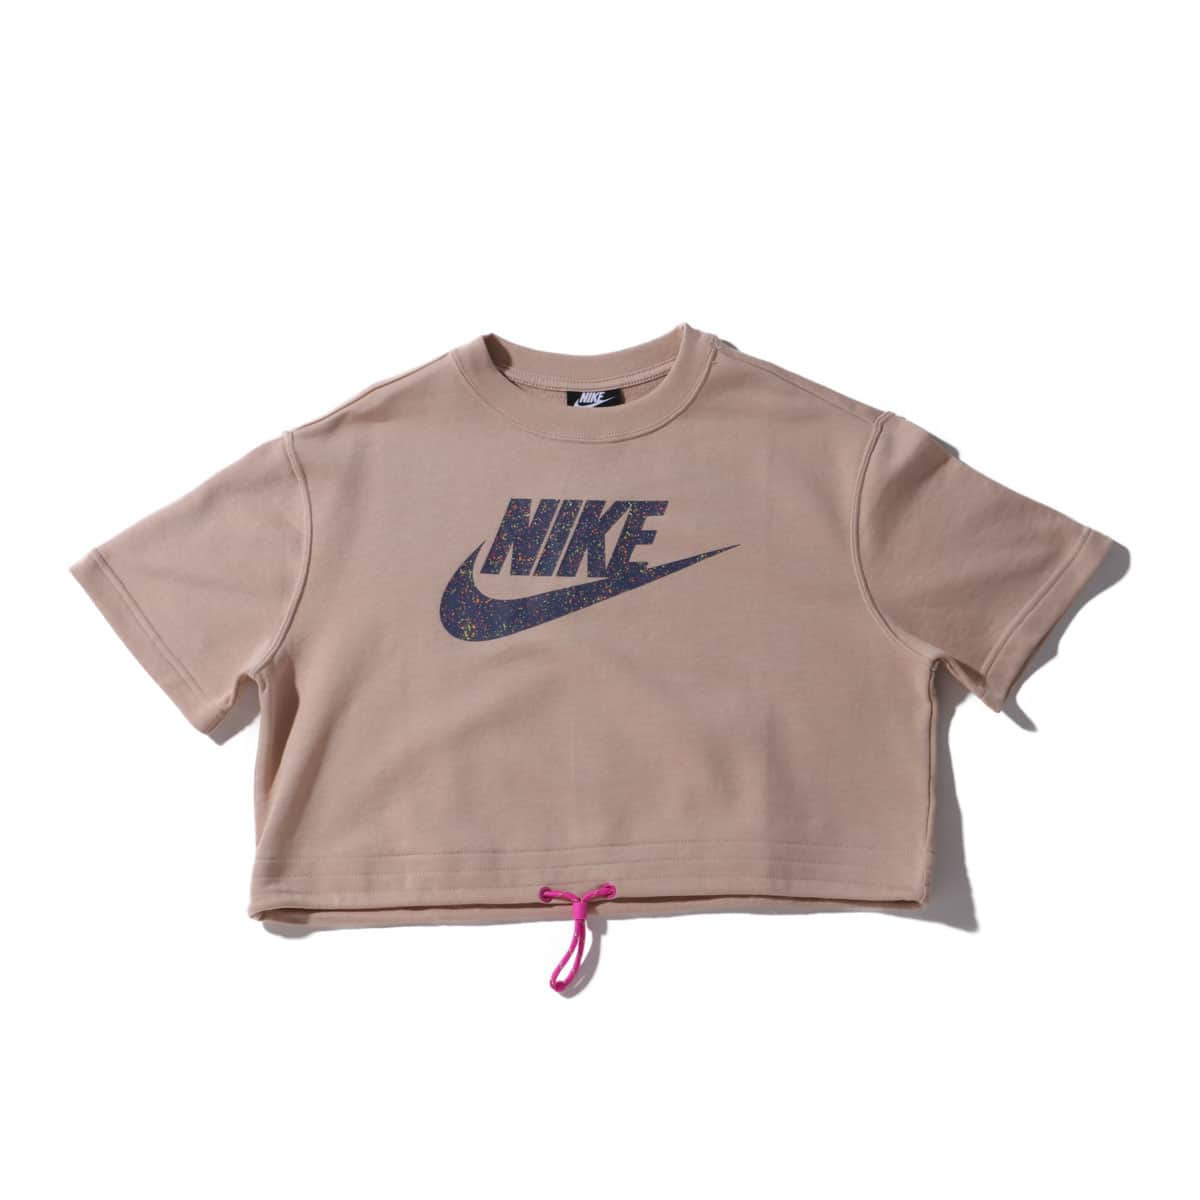 NIKE AS W NSW ICN CLSH TOP SS FT SHIMMER/FIRE PINK 20SU-I_photo_large